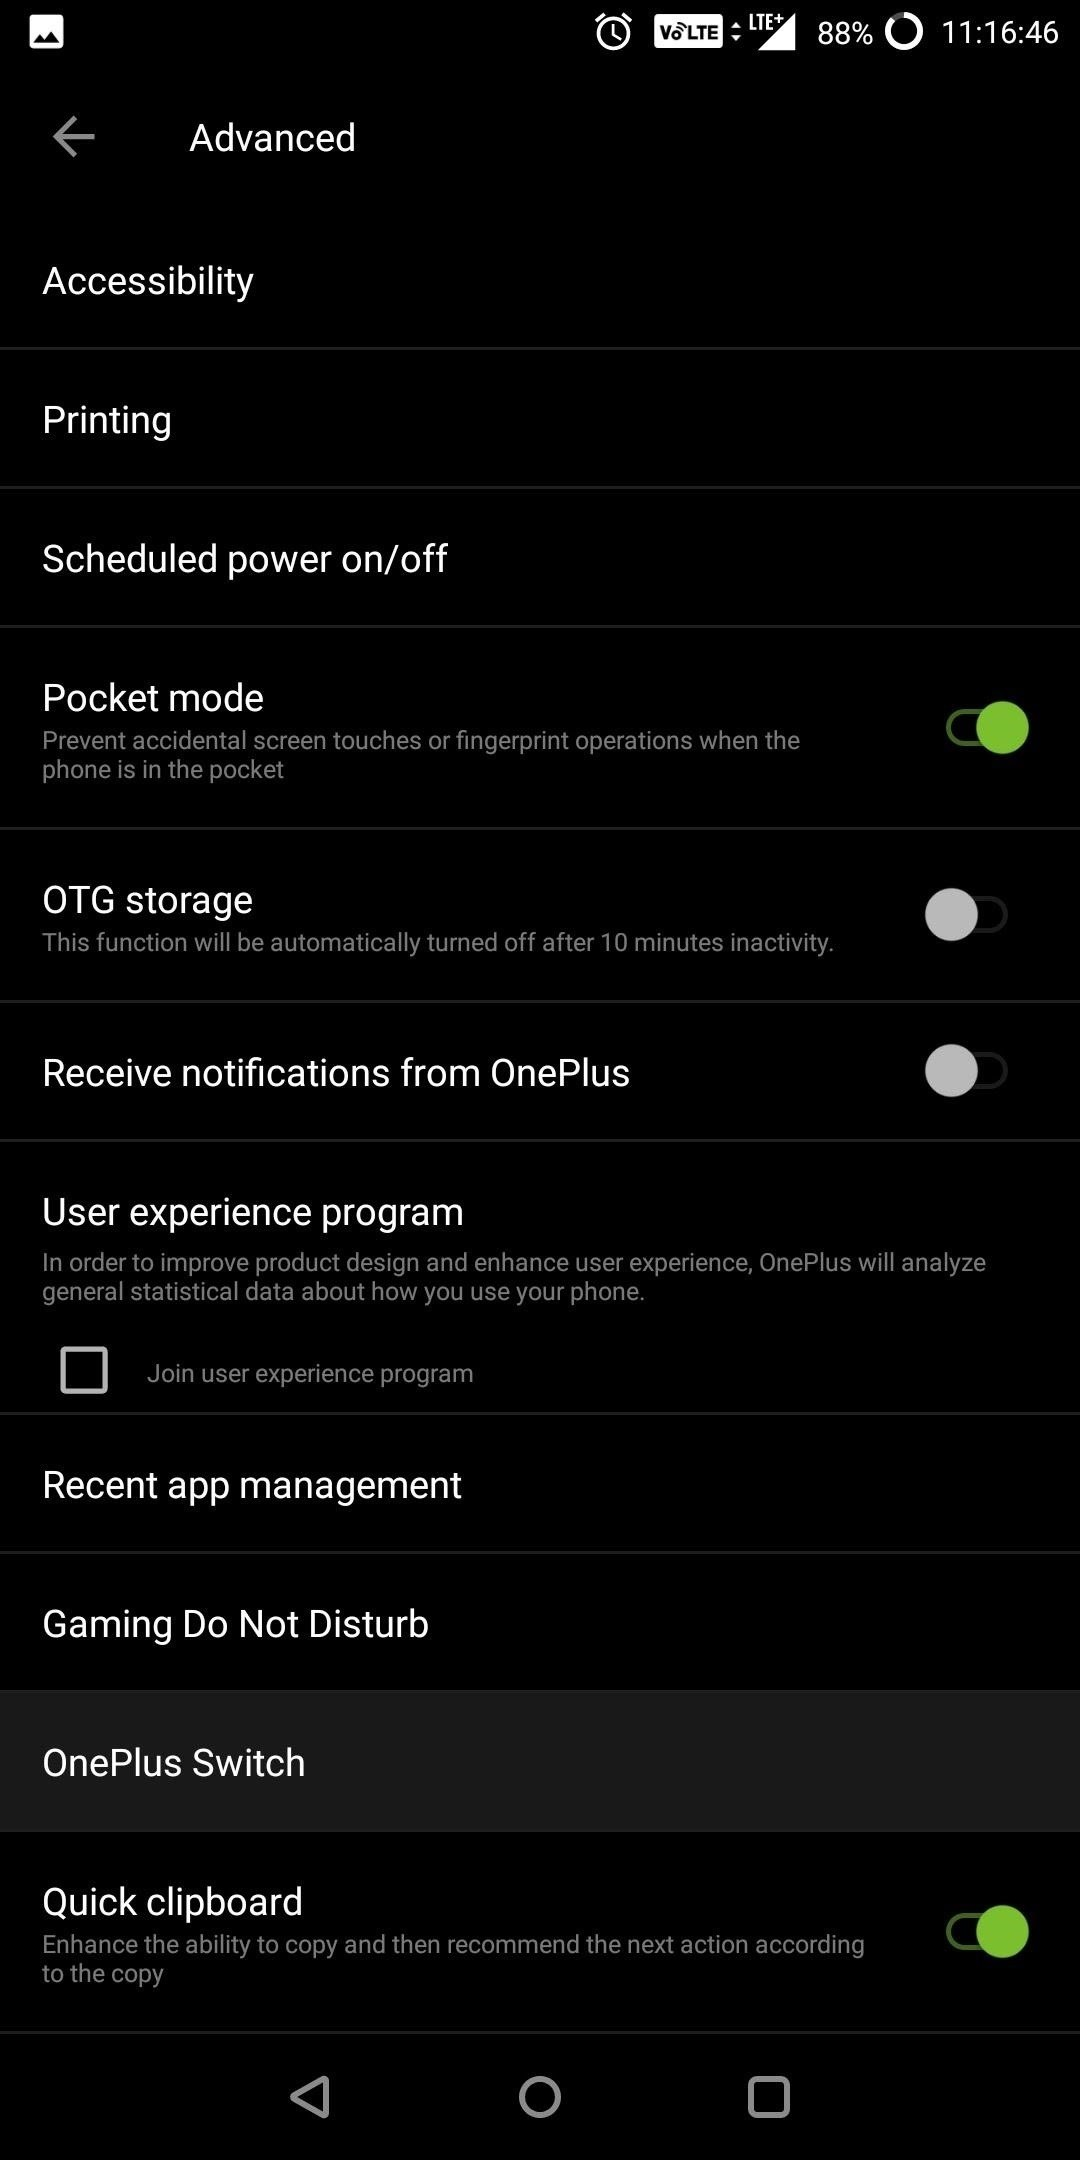 14 Cool fresh Features in Android Oreo for the OnePlus 5T